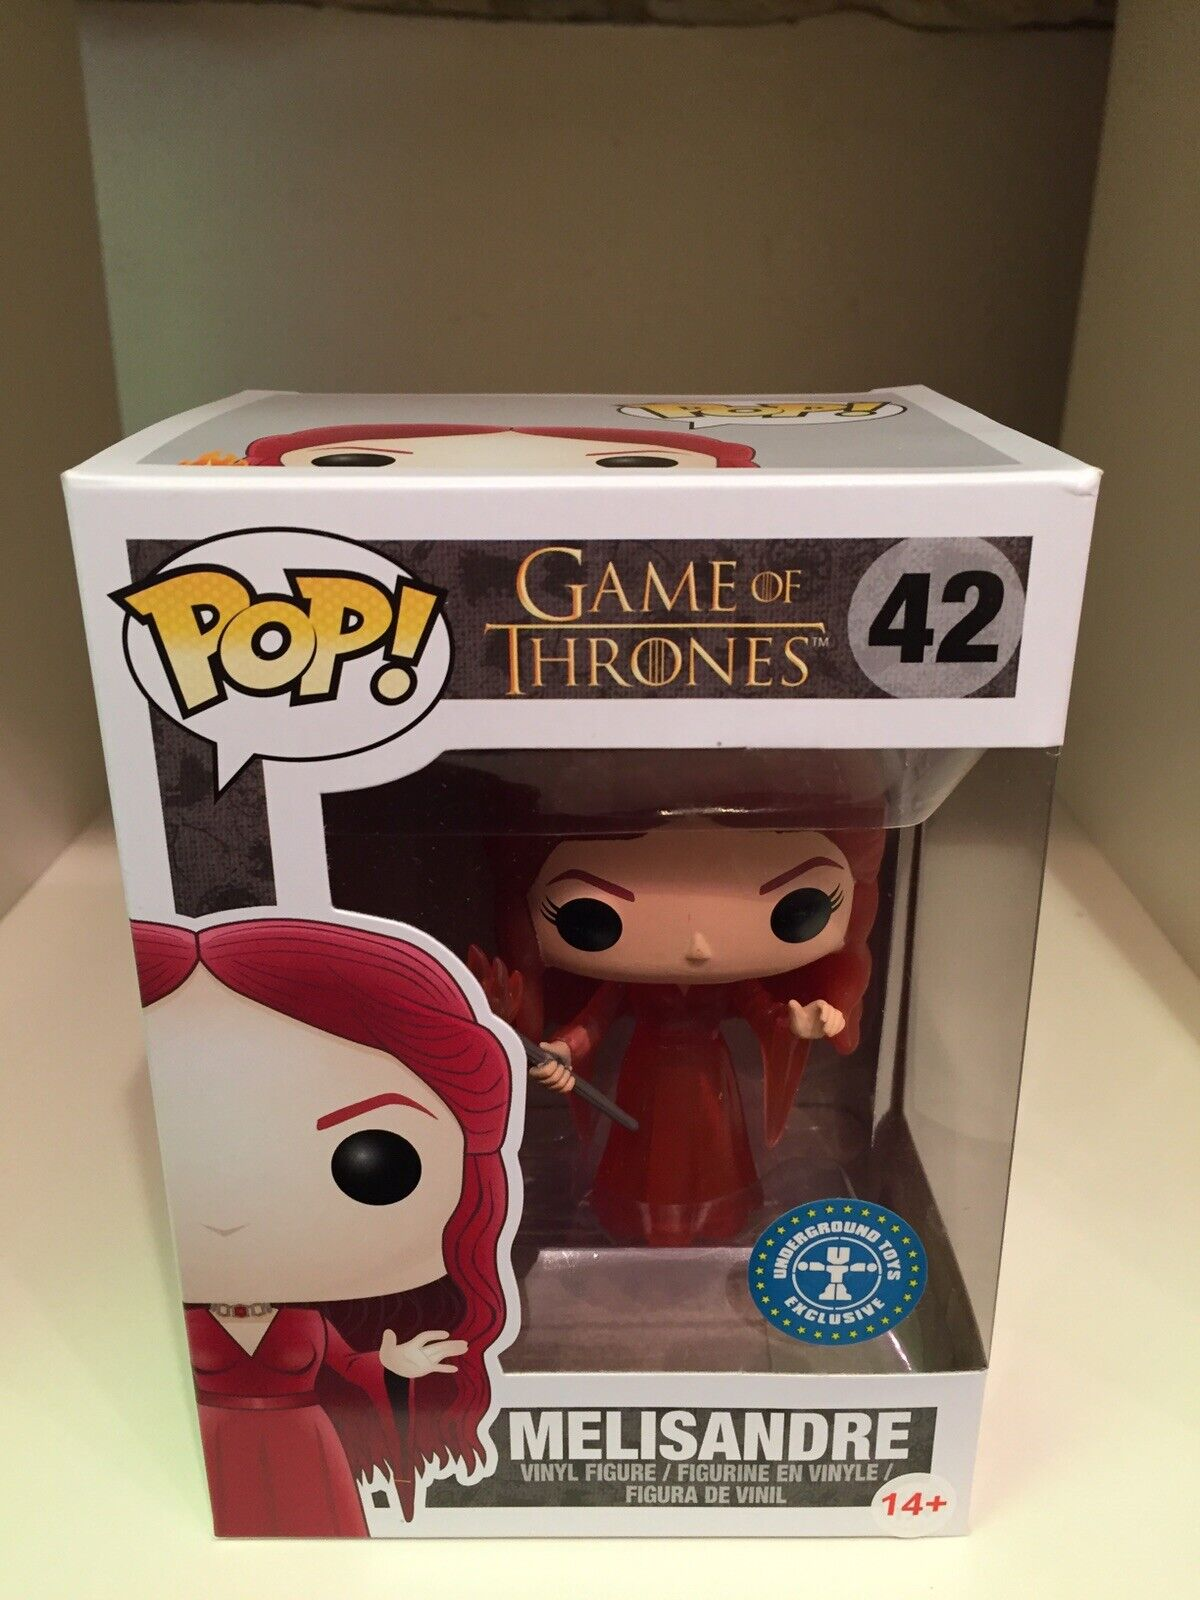 Melisandre translucide Limited Exclusive FUNKO POP Game of Thrones  42 rouge Lady